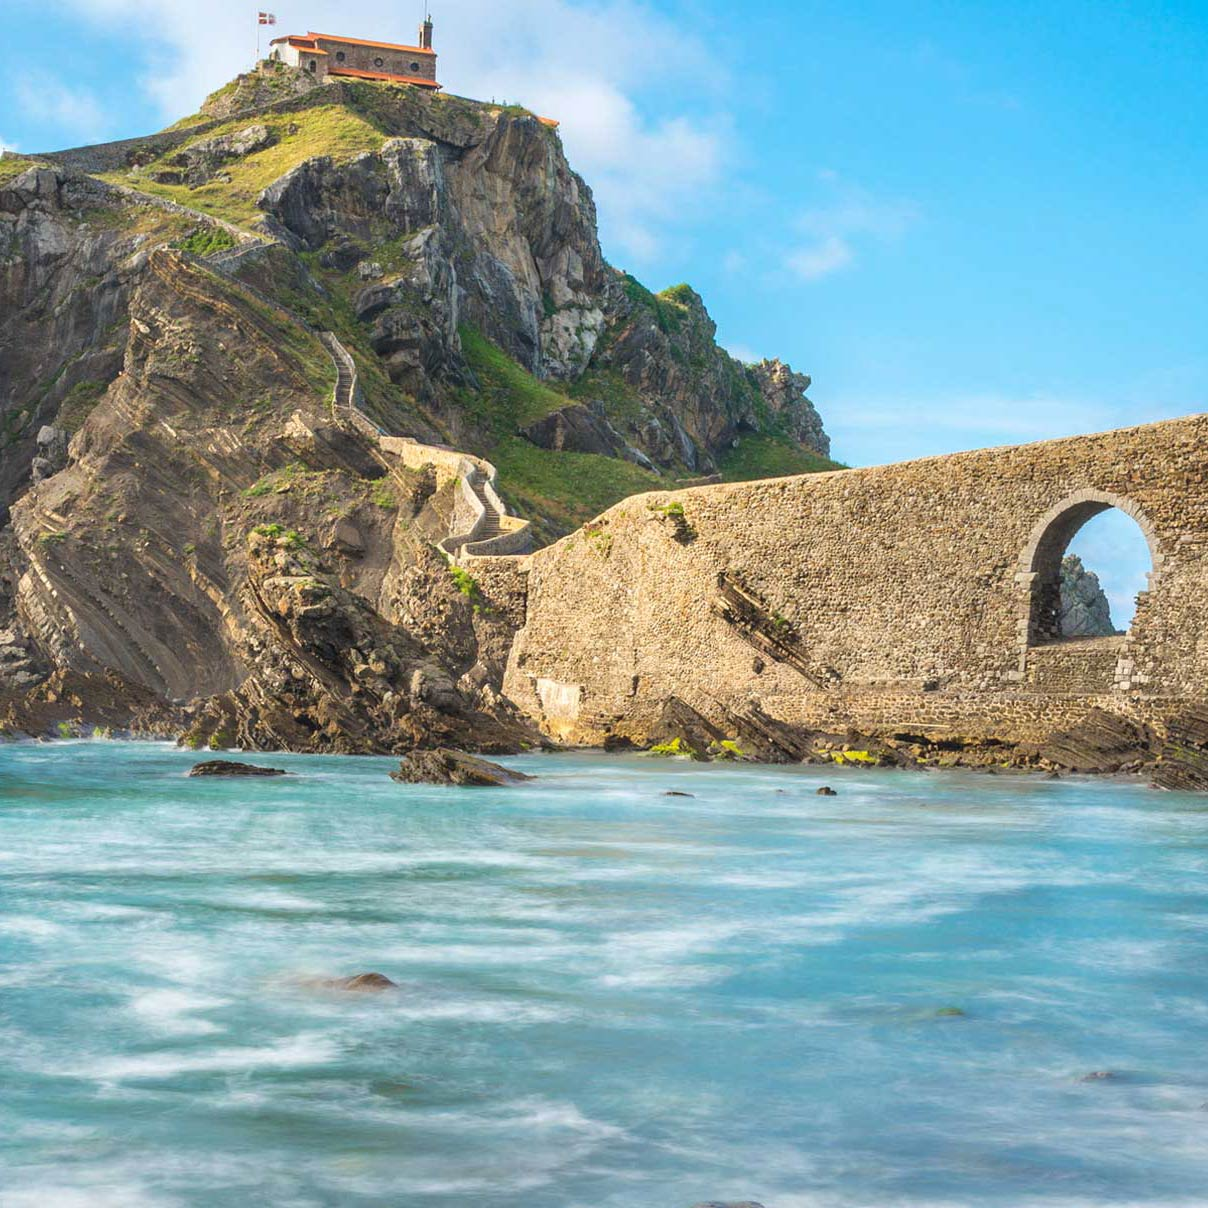 San Juan de Gaztelugatxe, a castle on the rock at sea